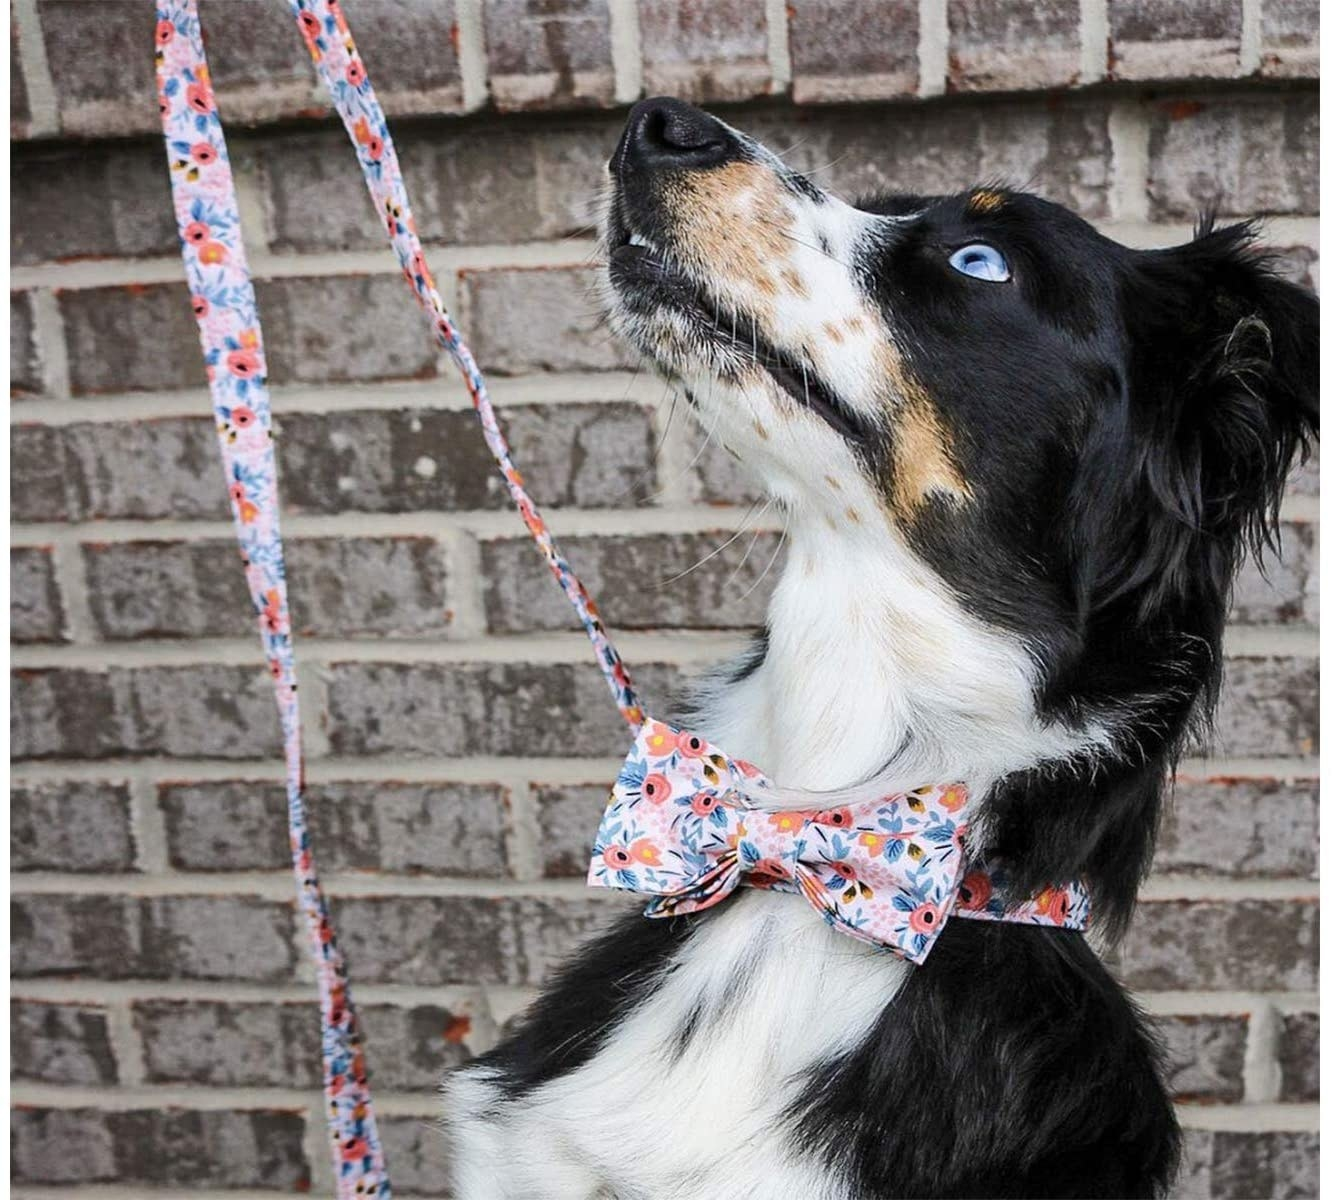 A dog wearing a pink floral bowtie collar and matching leash